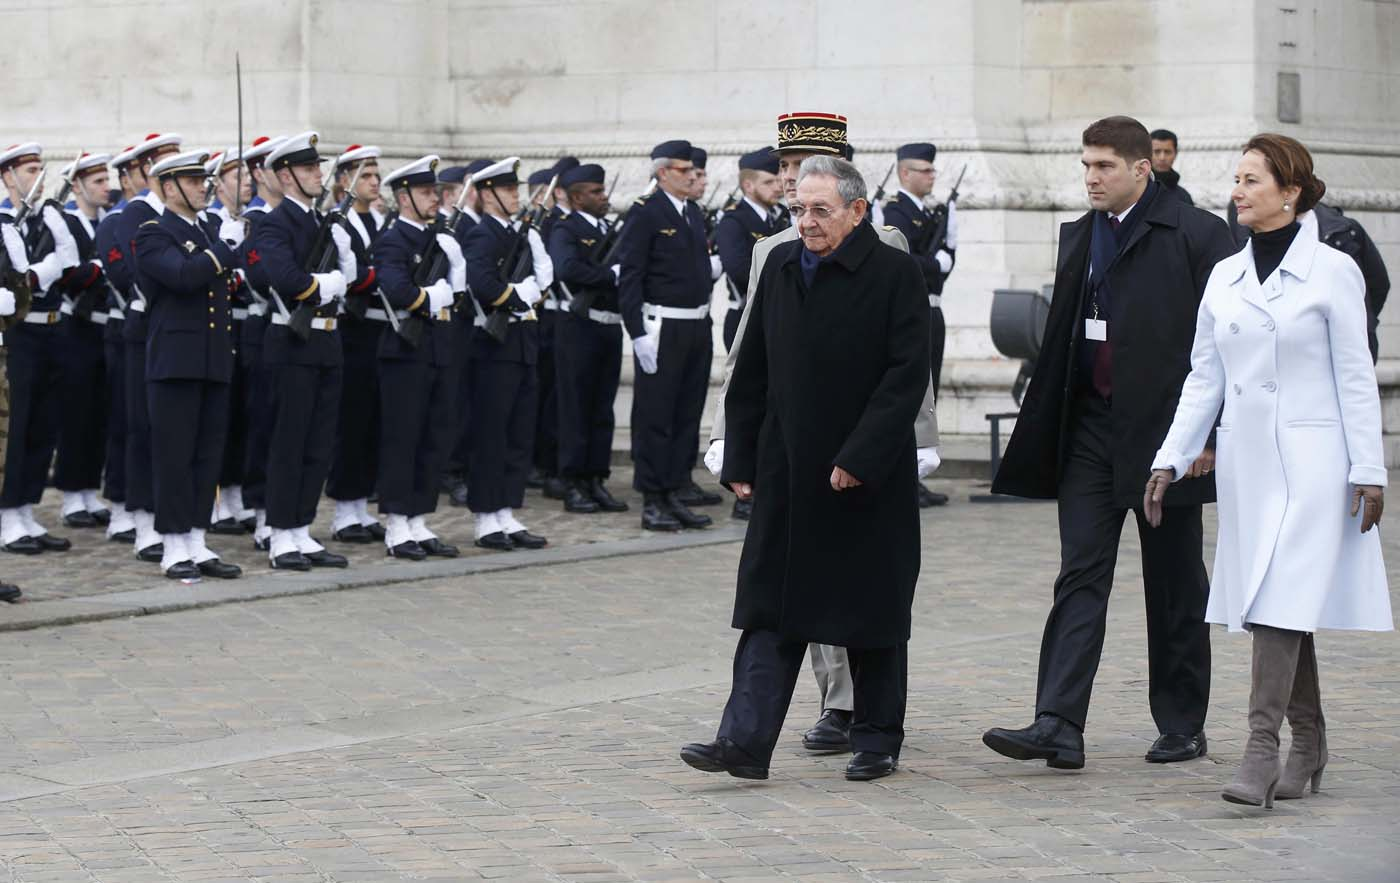 Cuba's President Raul Castro attends a ceremony at the Tomb of the Unknown Soldier at the Arc de Triomphe in Paris